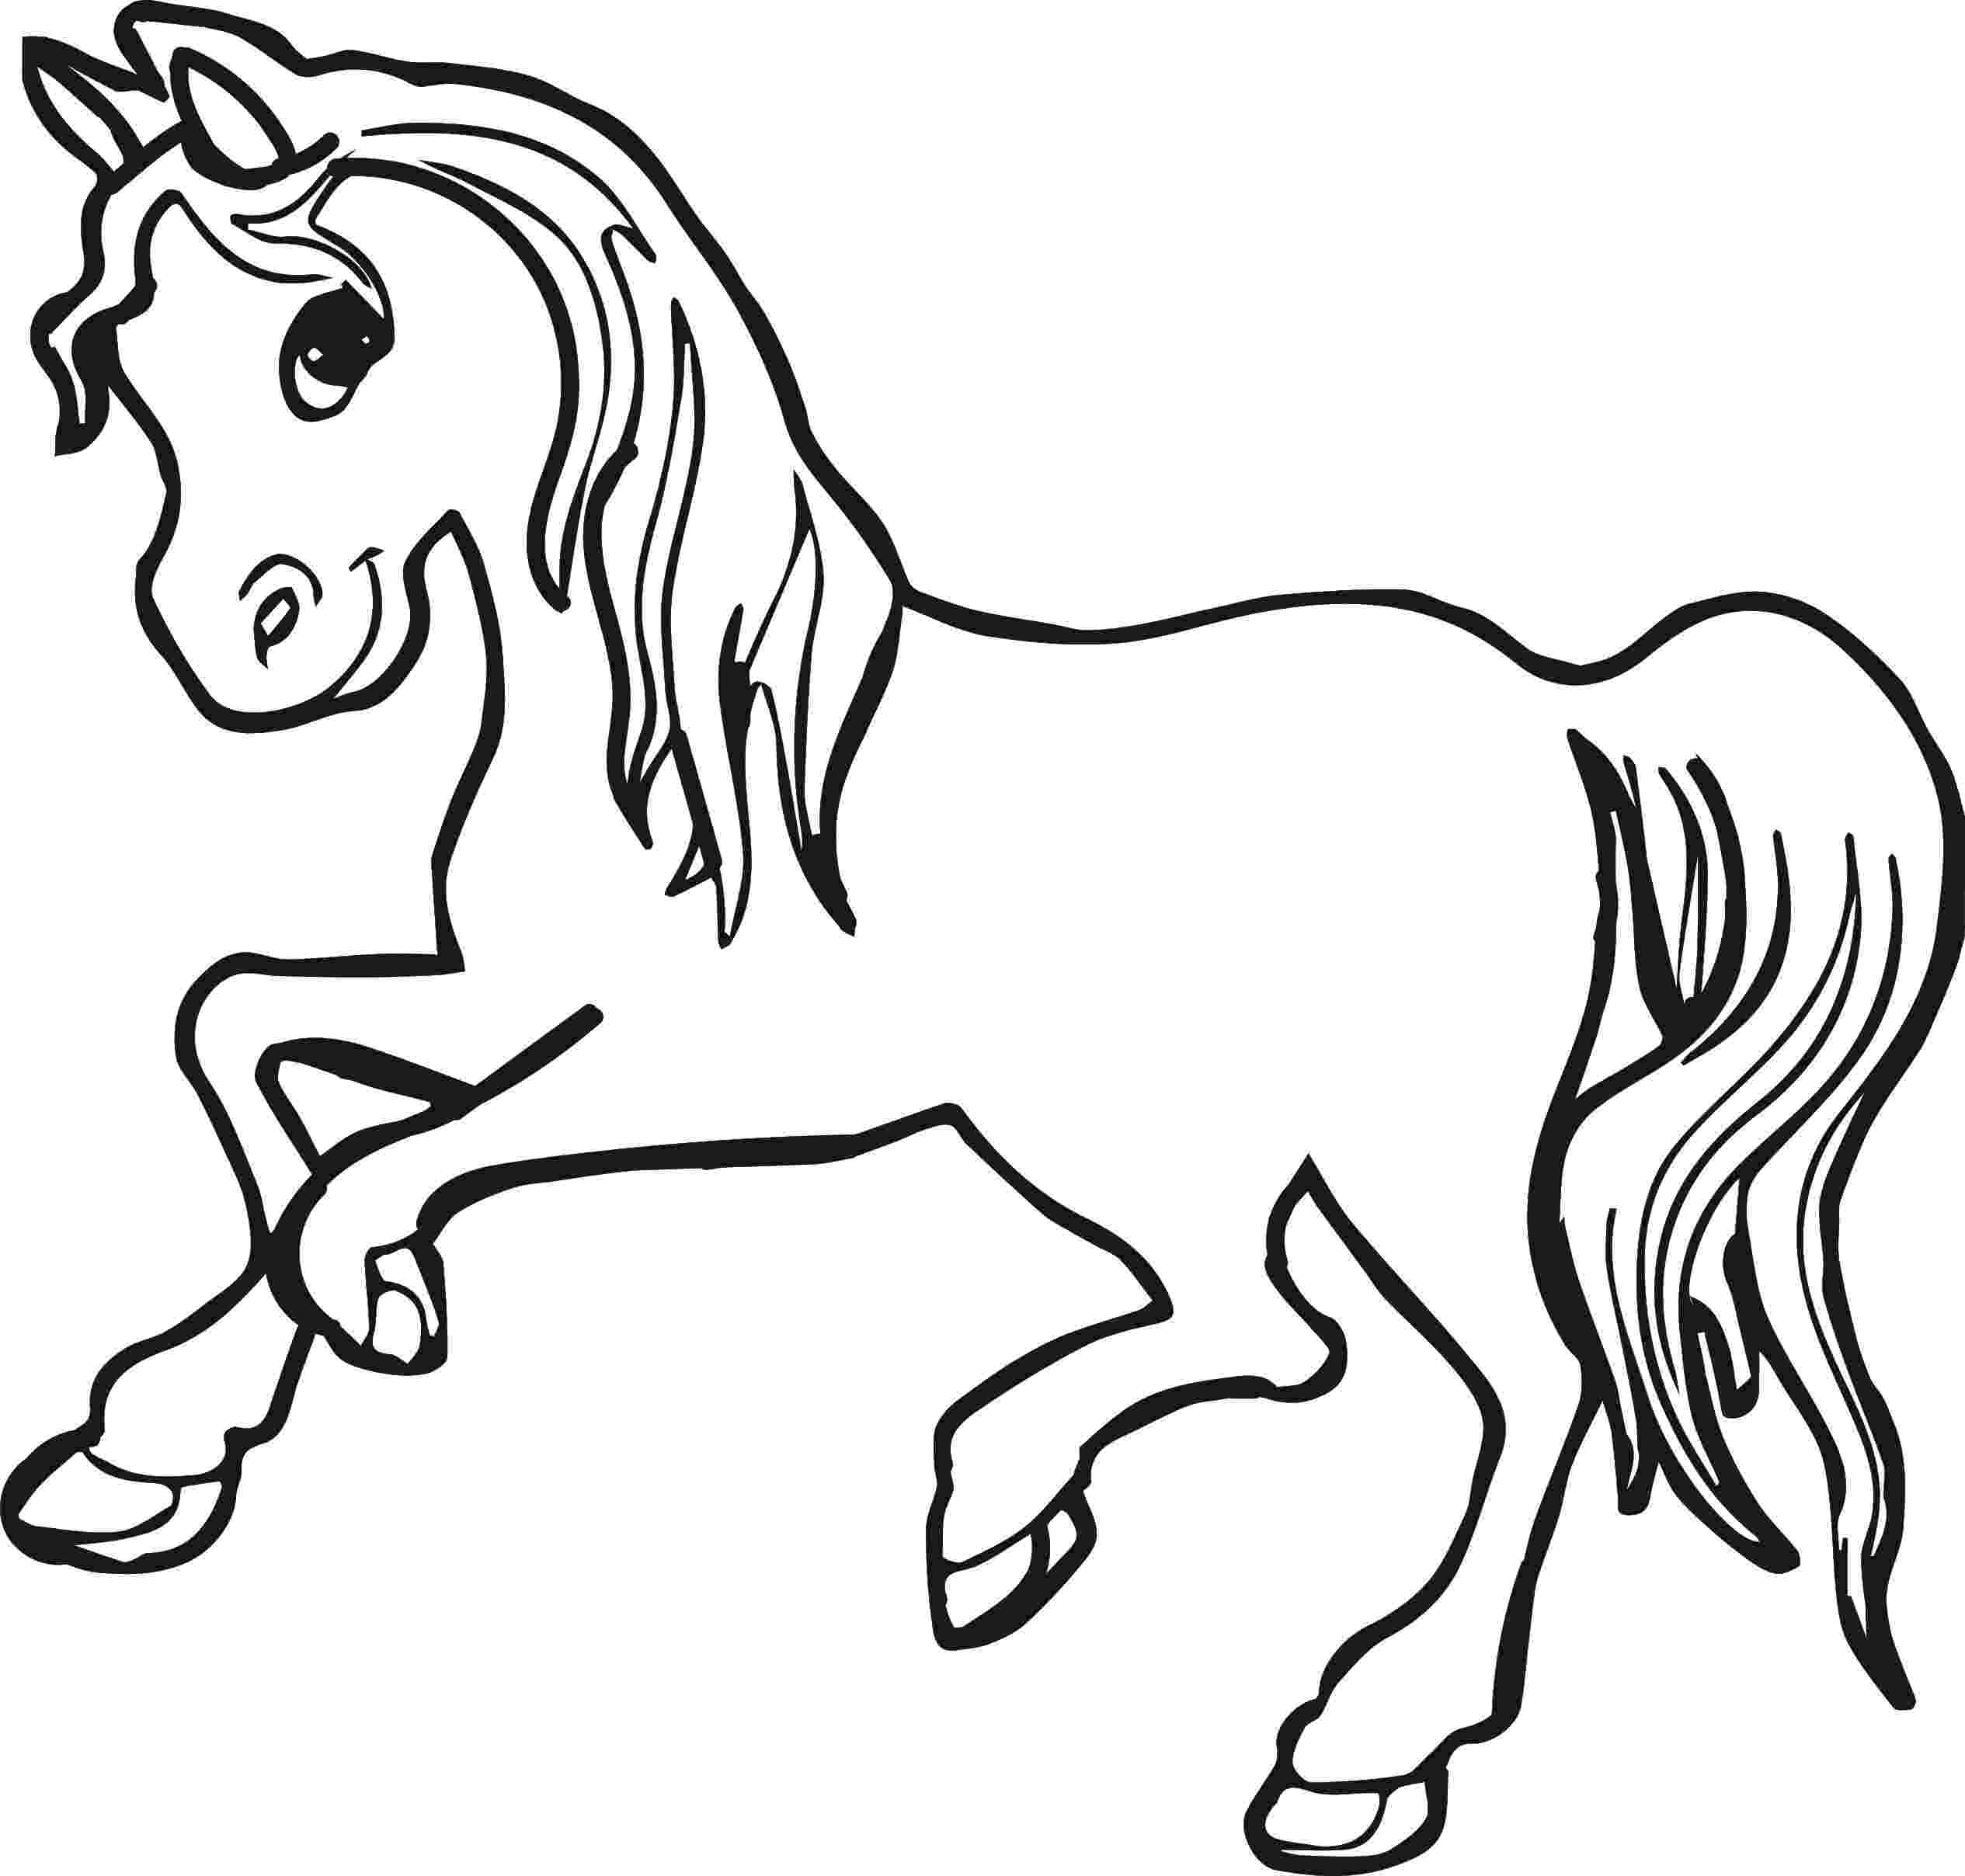 horse picture to color horse coloring pages for kids coloring pages for kids to horse picture color